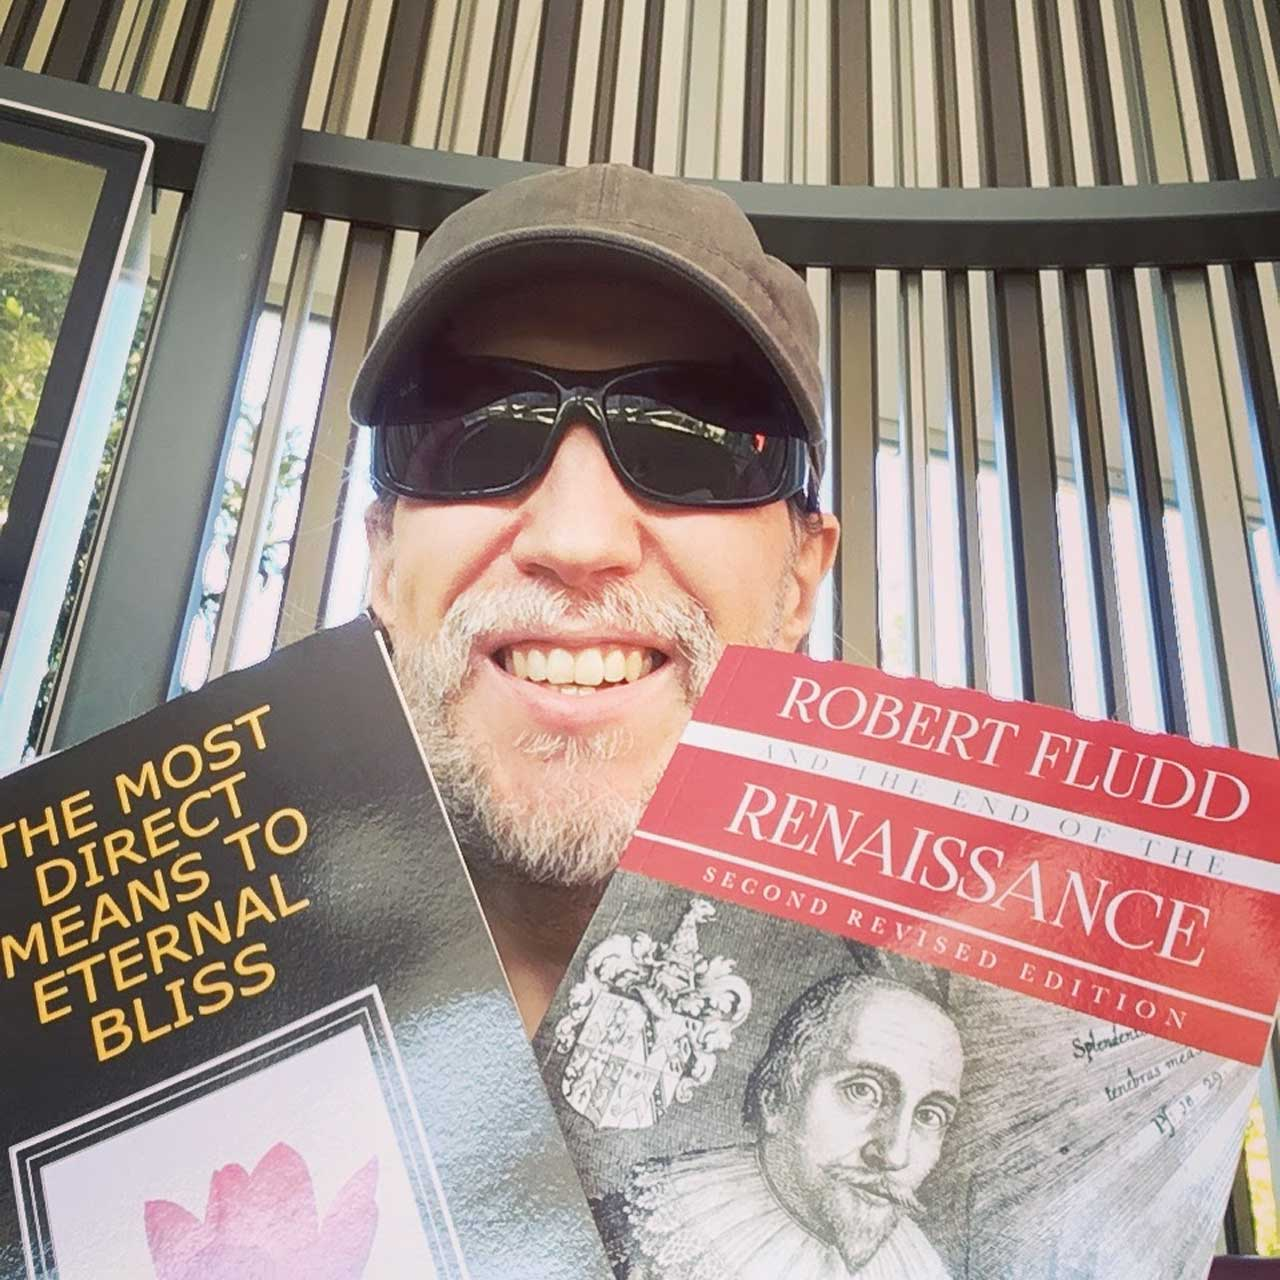 Anthony holds up two books, The Most Direct Means to Eternal Bliss and Robert Fludd and the End of the Renaissance.